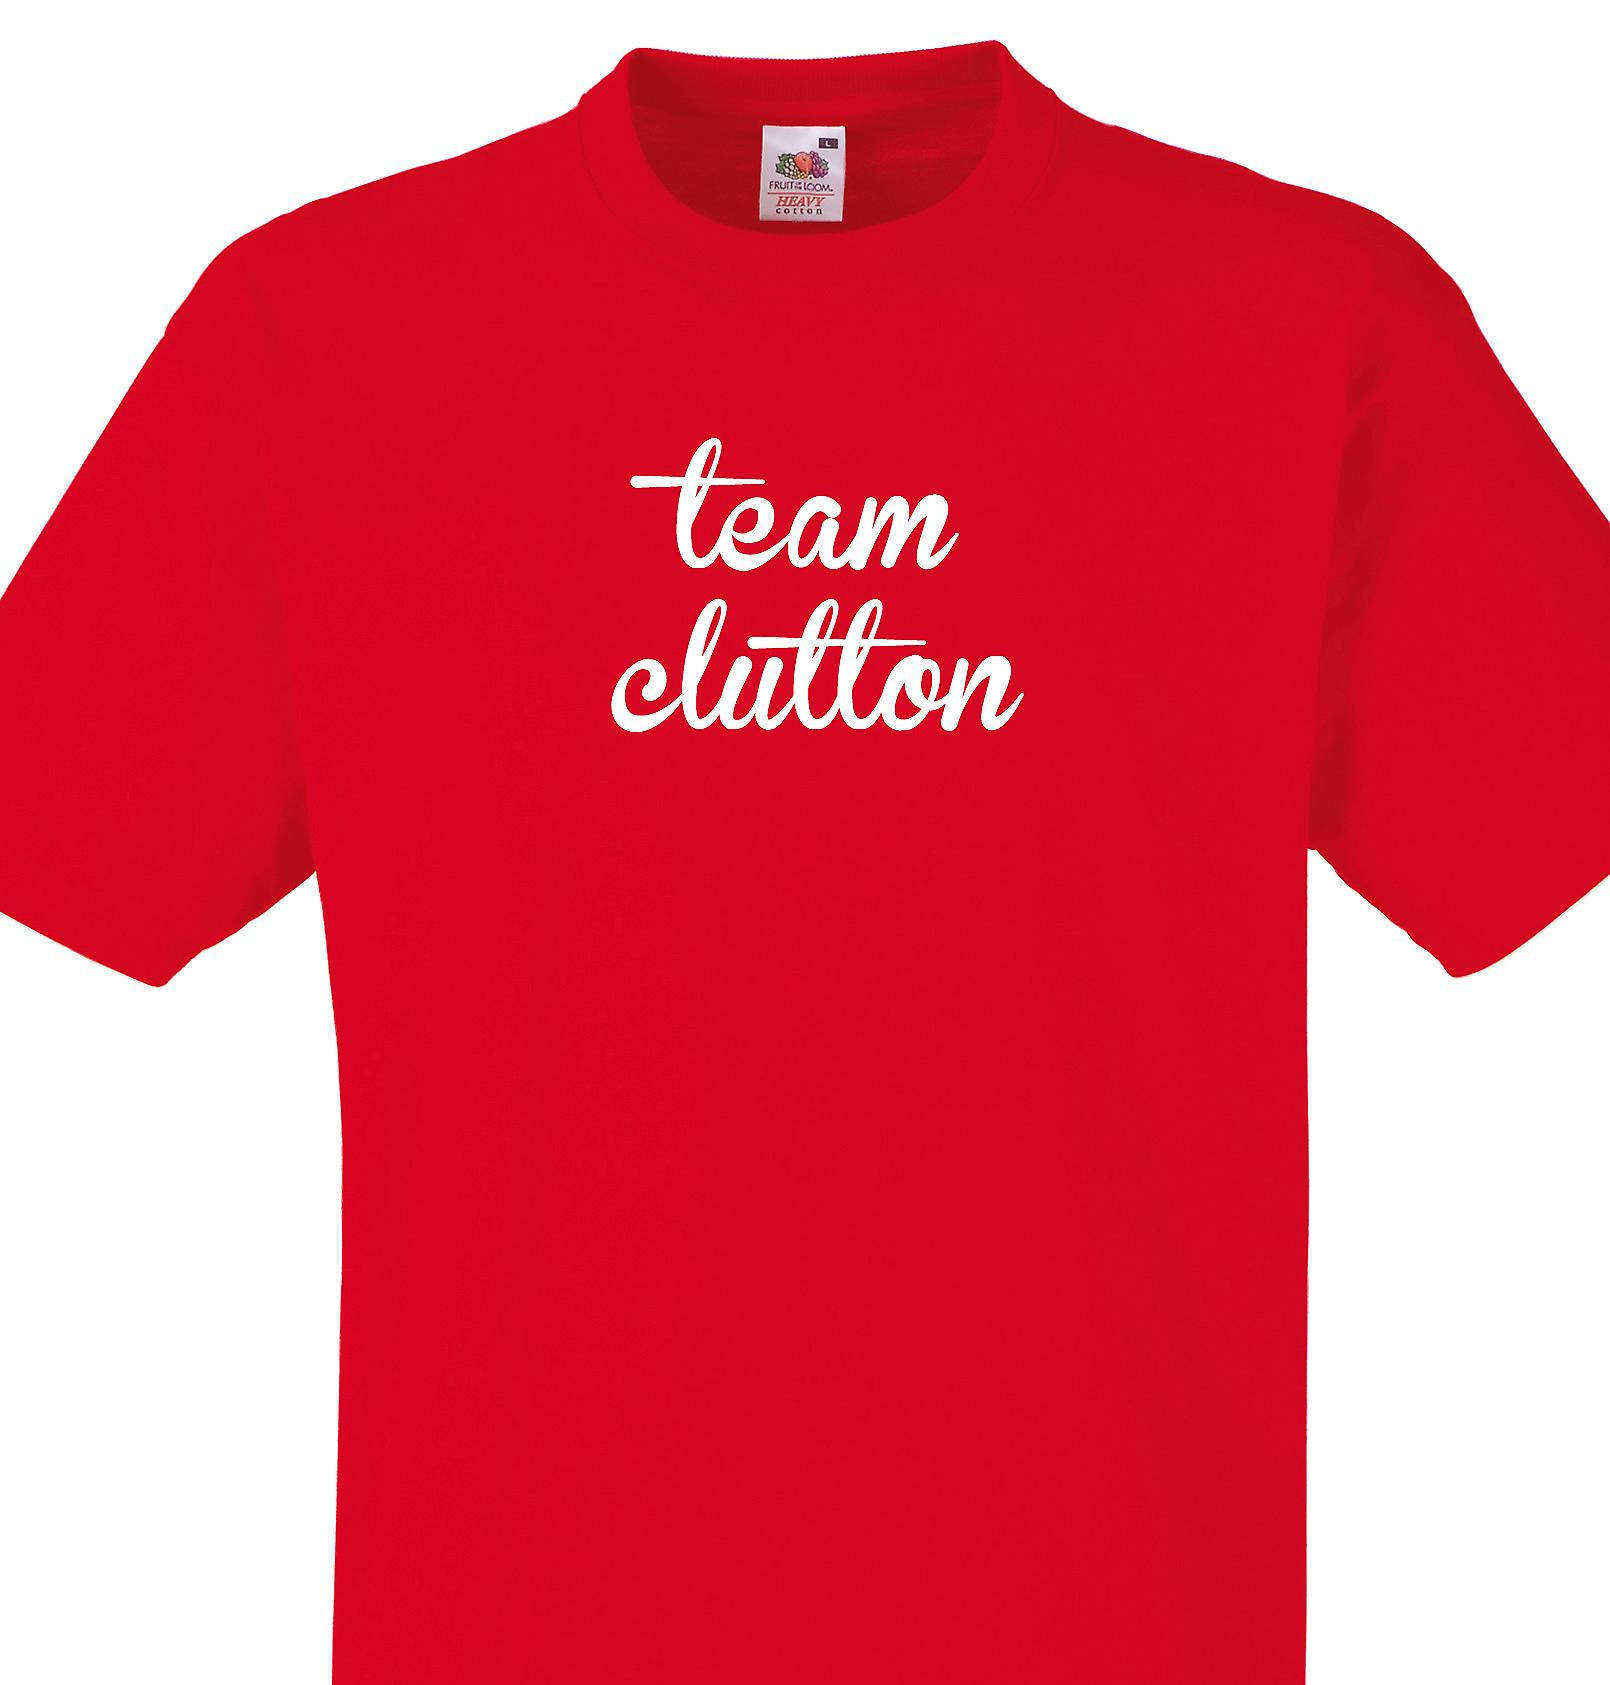 Team Clutton Red T shirt